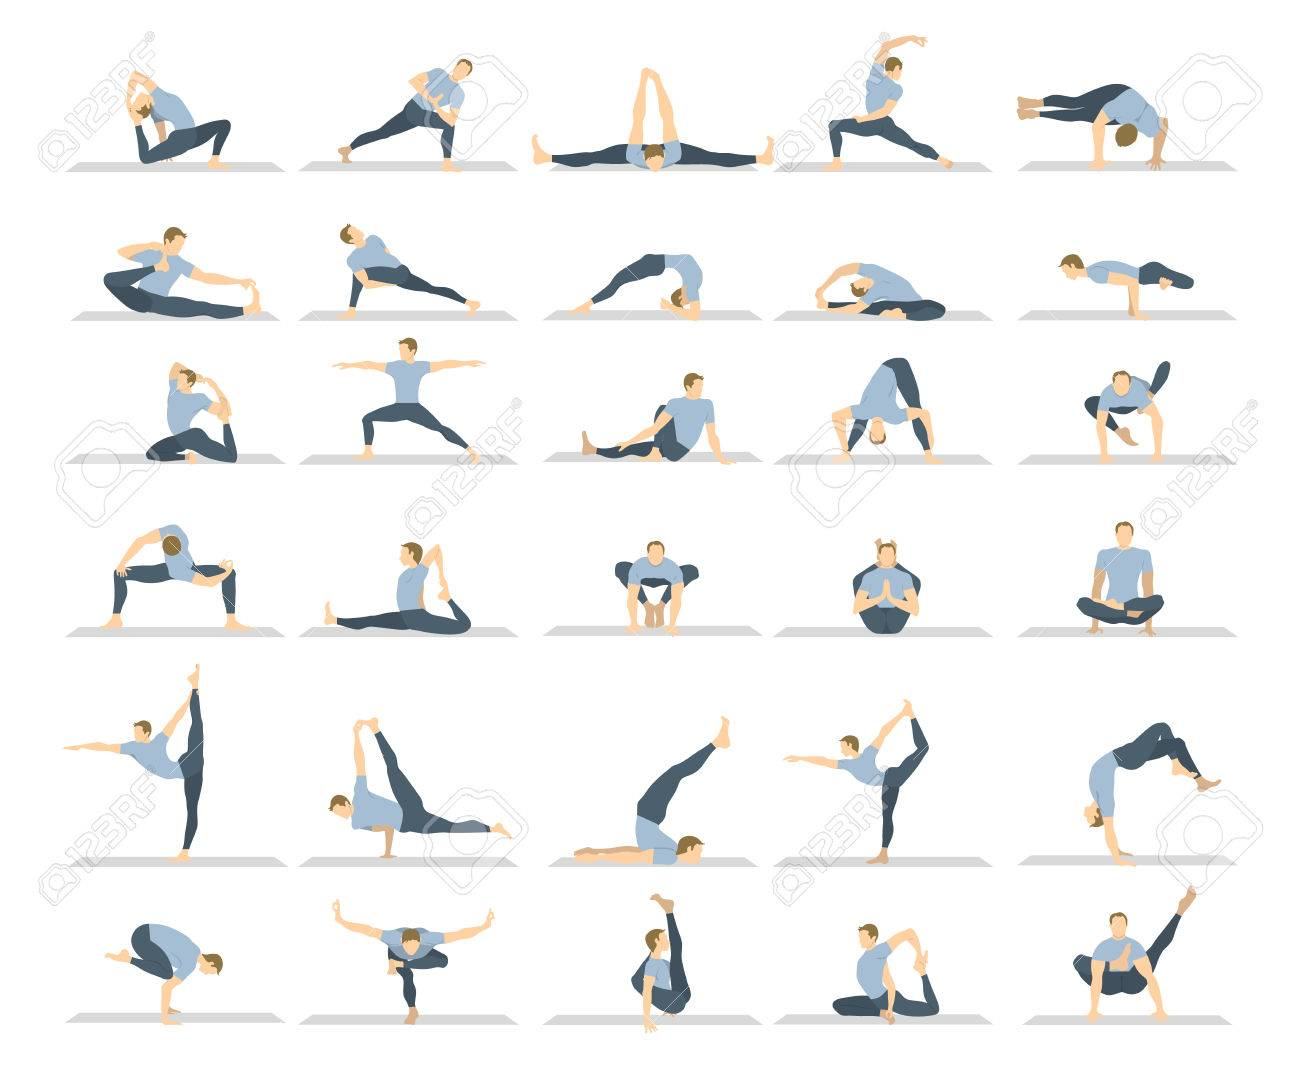 Yoga Workout Set On White Background Different Poses And Asanas Royalty Free Cliparts Vectors And Stock Illustration Image 68826286